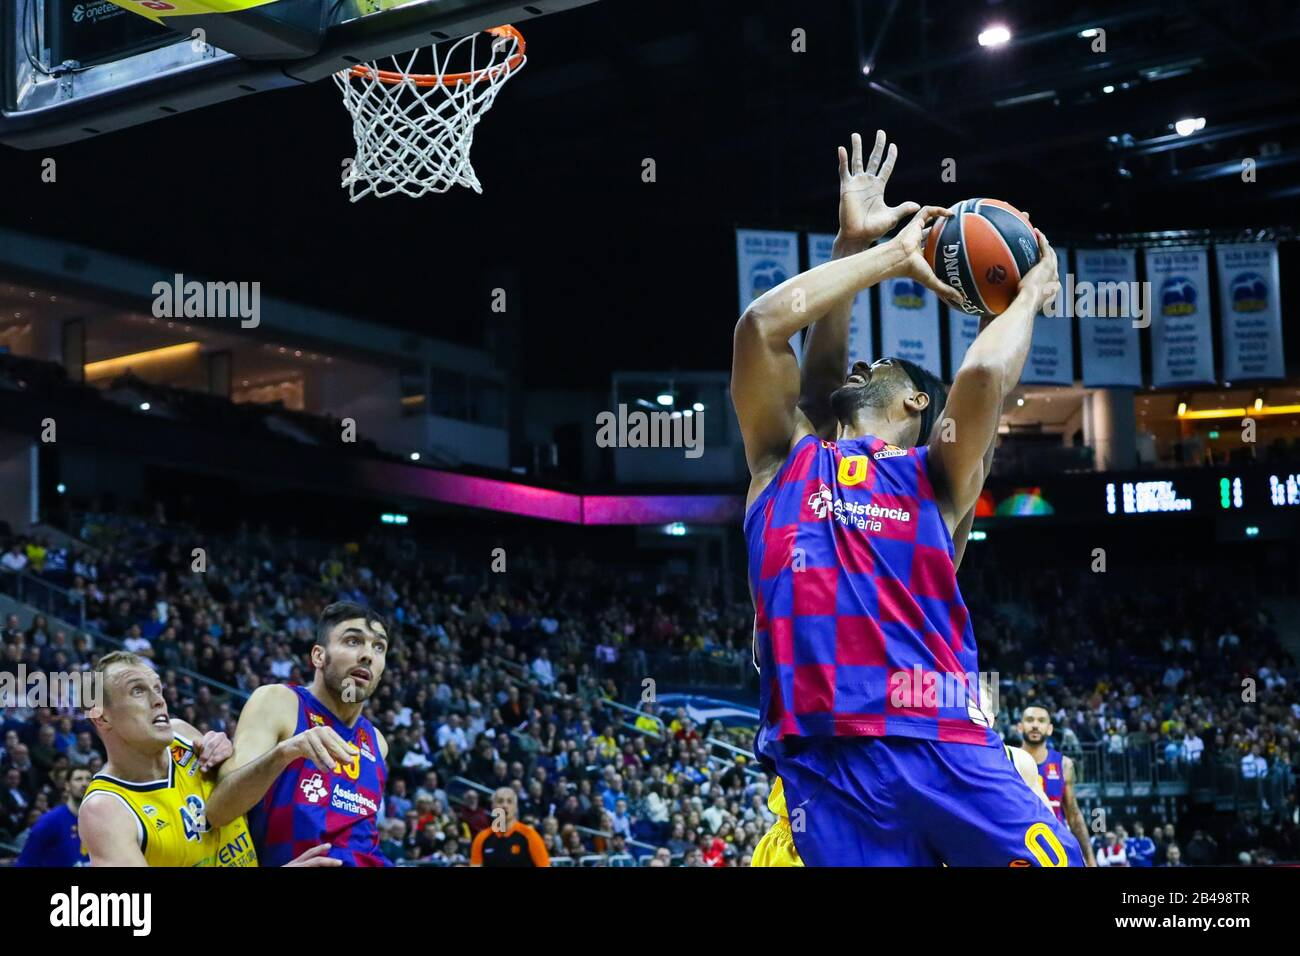 Berlin, Germany, March 04, 2020:Brandon Davies of FC Barcelona in action during the EuroLeague basketball match between Alba Berlin and FC Barcelona Stock Photo